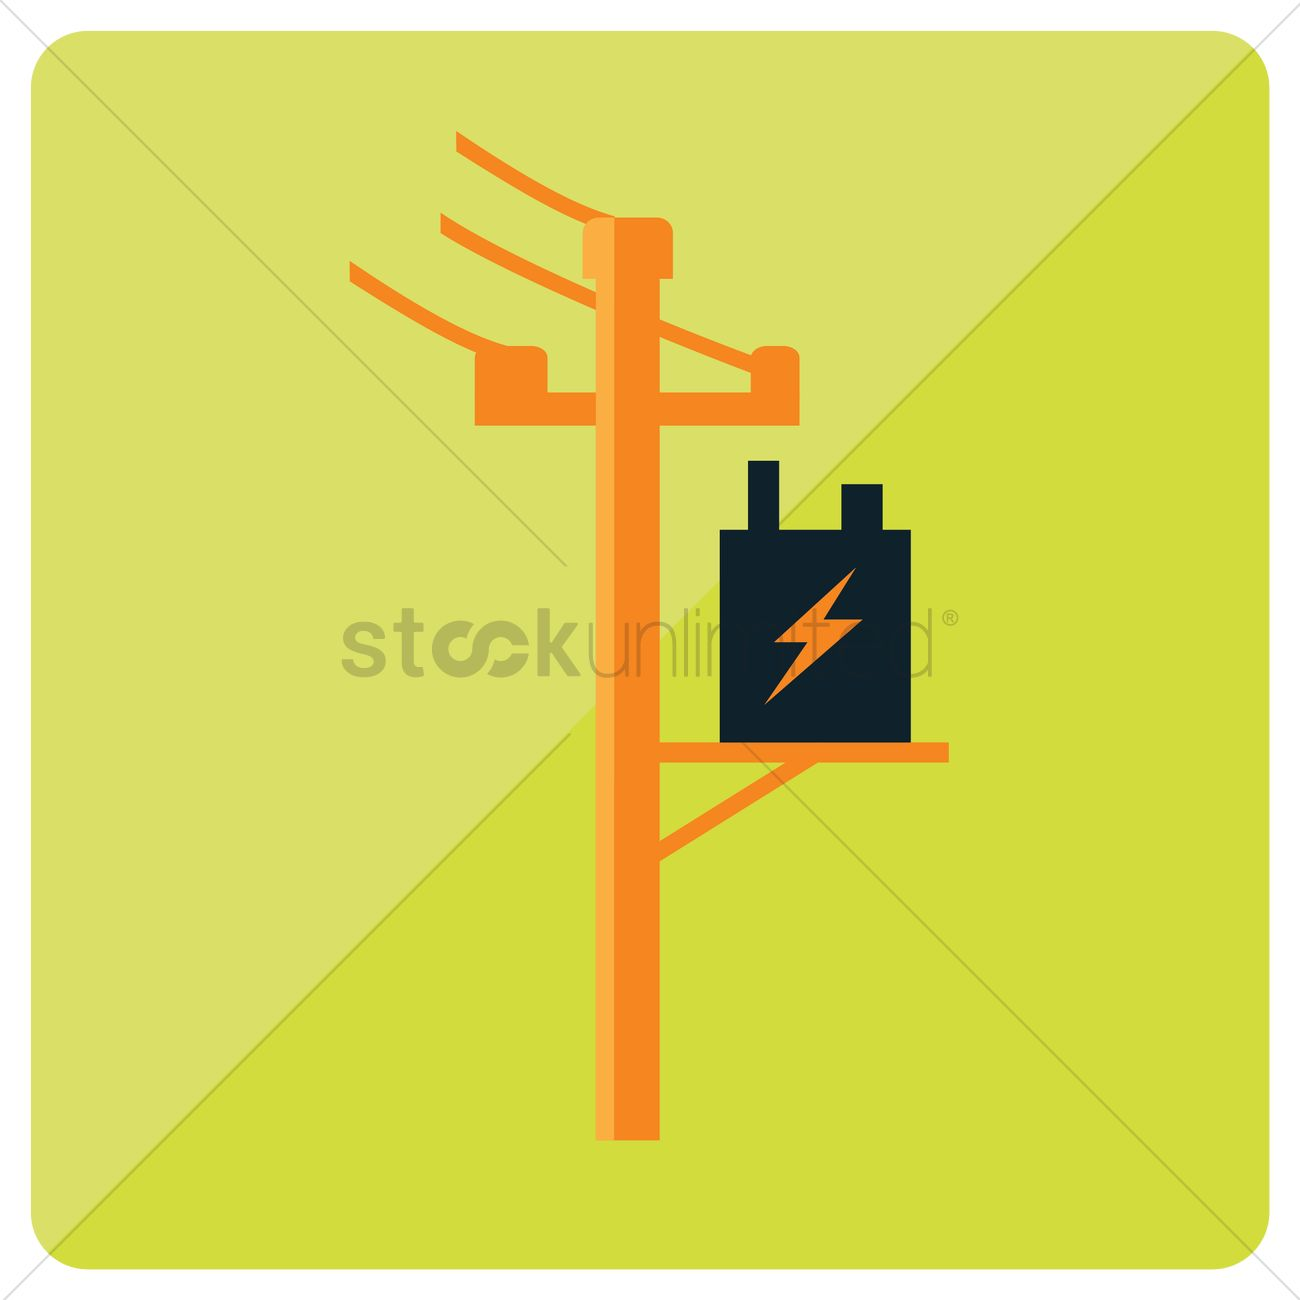 Free Electric power pole Vector Image - 1248362 | StockUnlimited